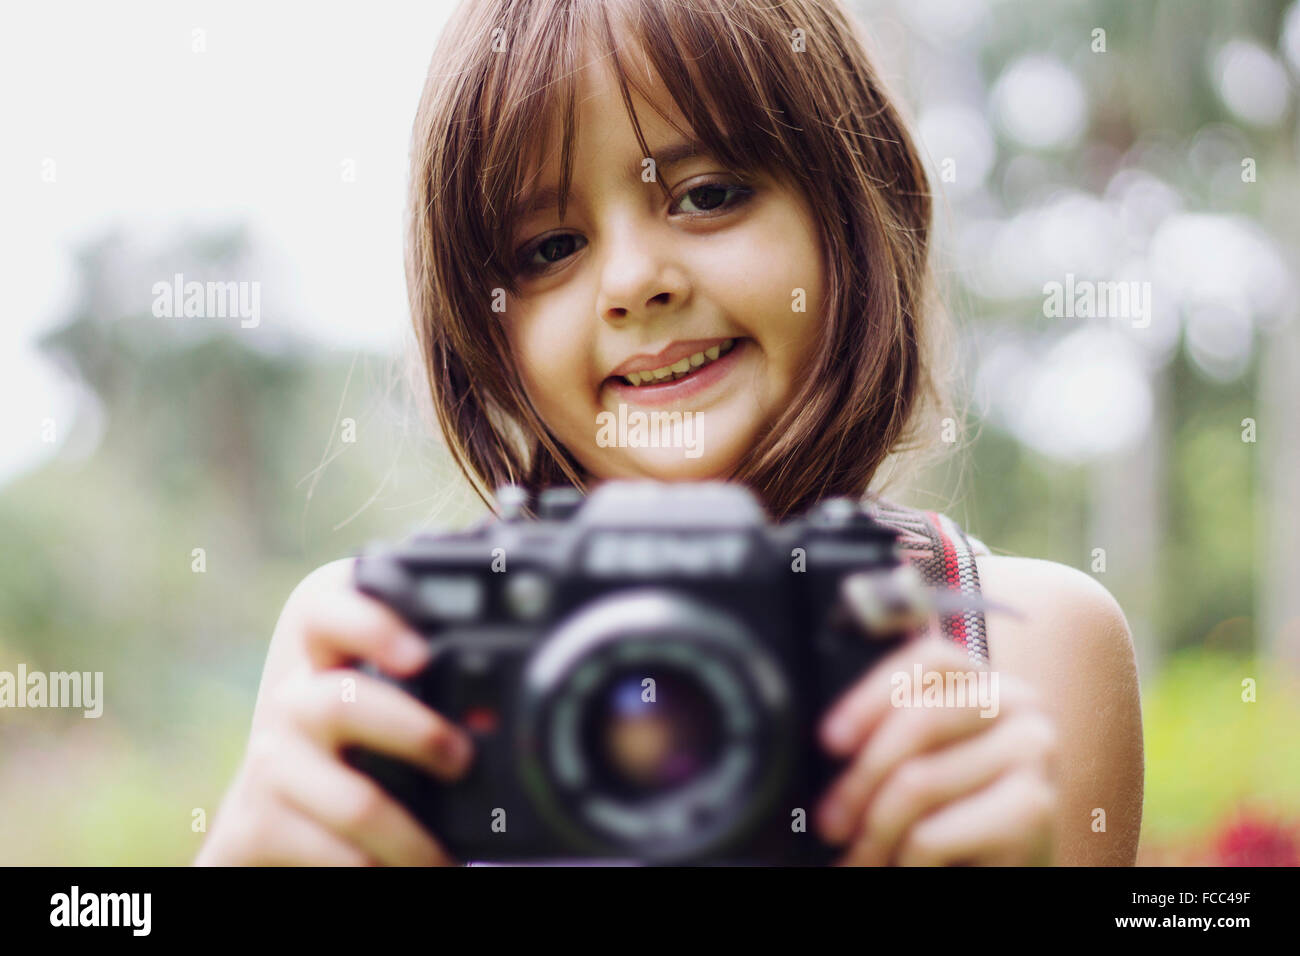 Portrait Of A Smiling Girl Holding Camera Outdoors - Stock Image